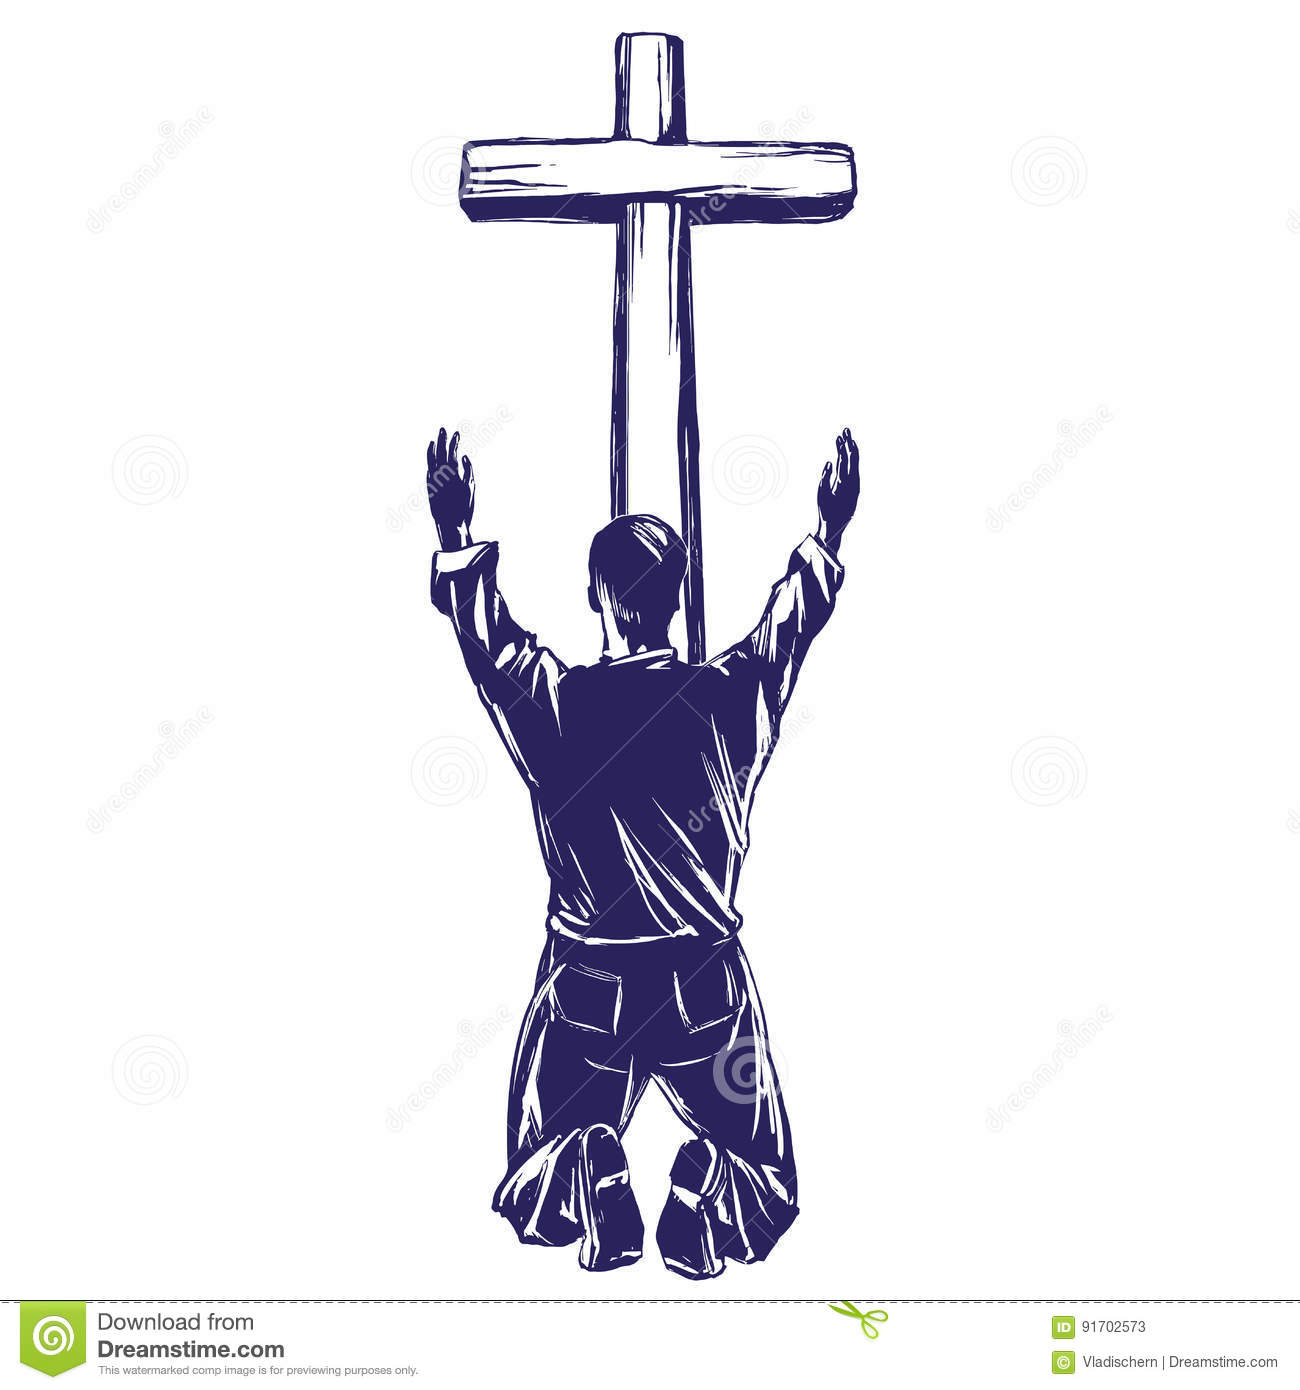 Man Praises God For The Forgiveness Of His Sins Crucified On The